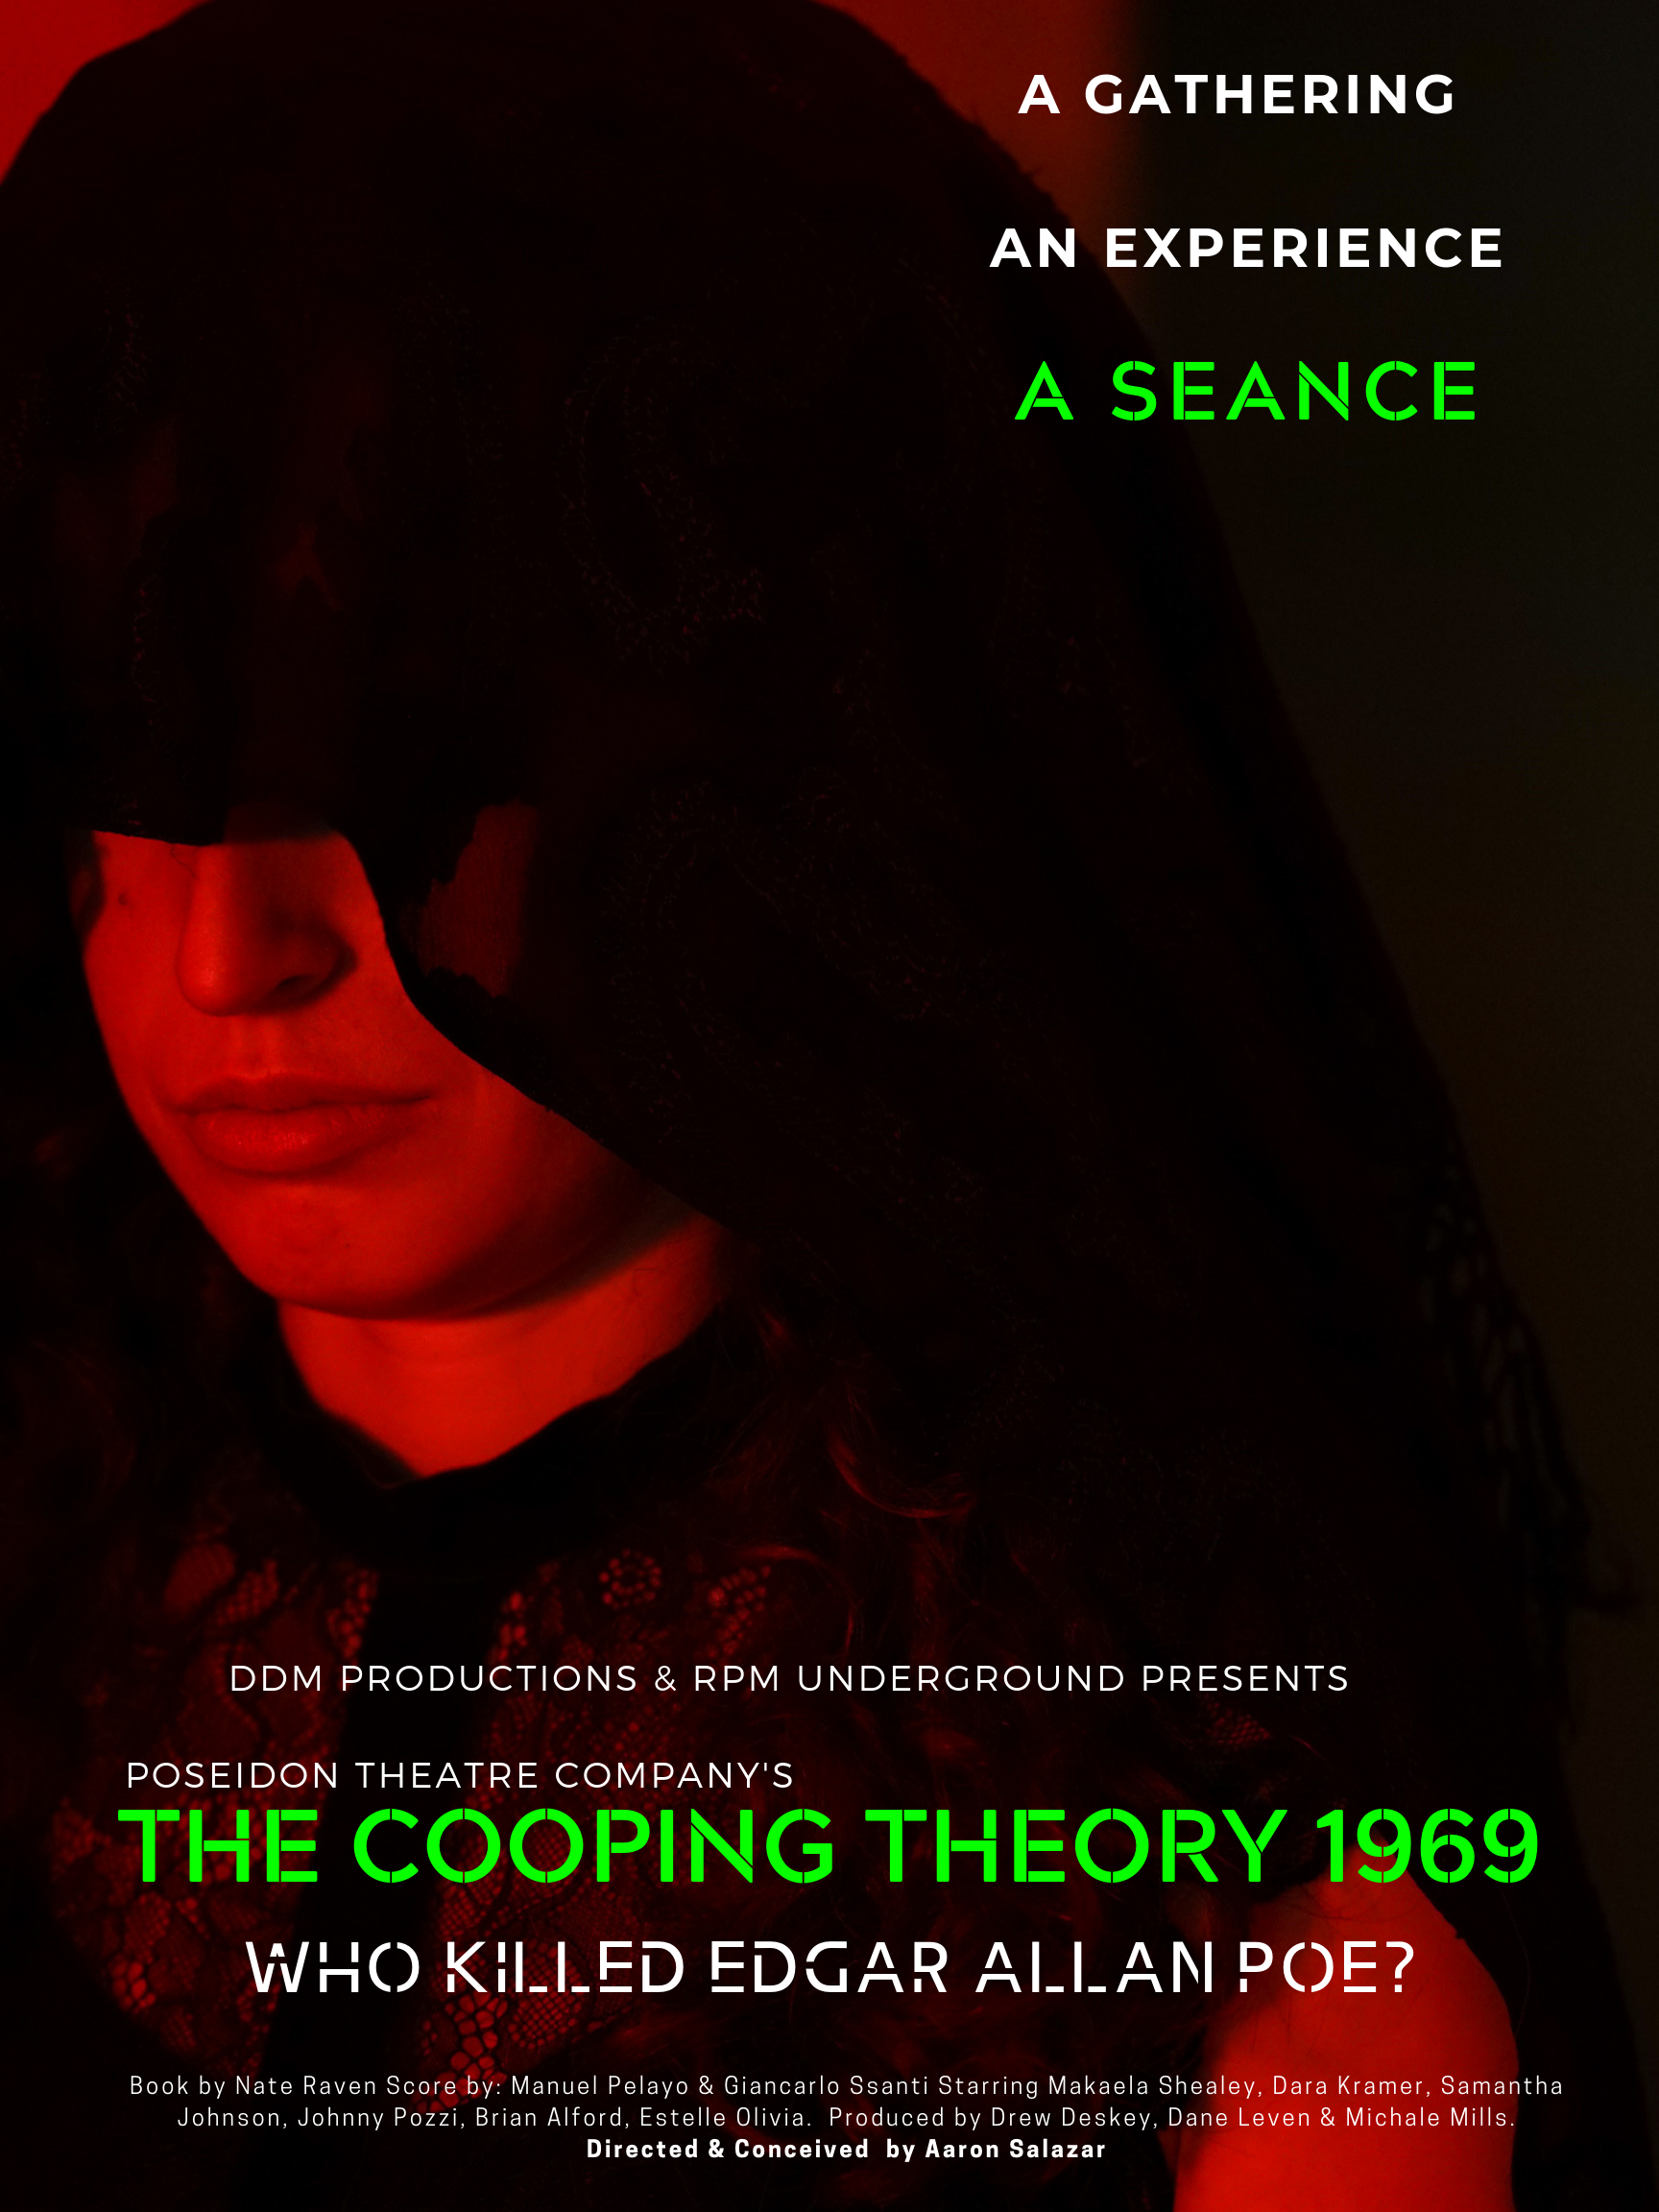 Poster Ideas_Seance .png